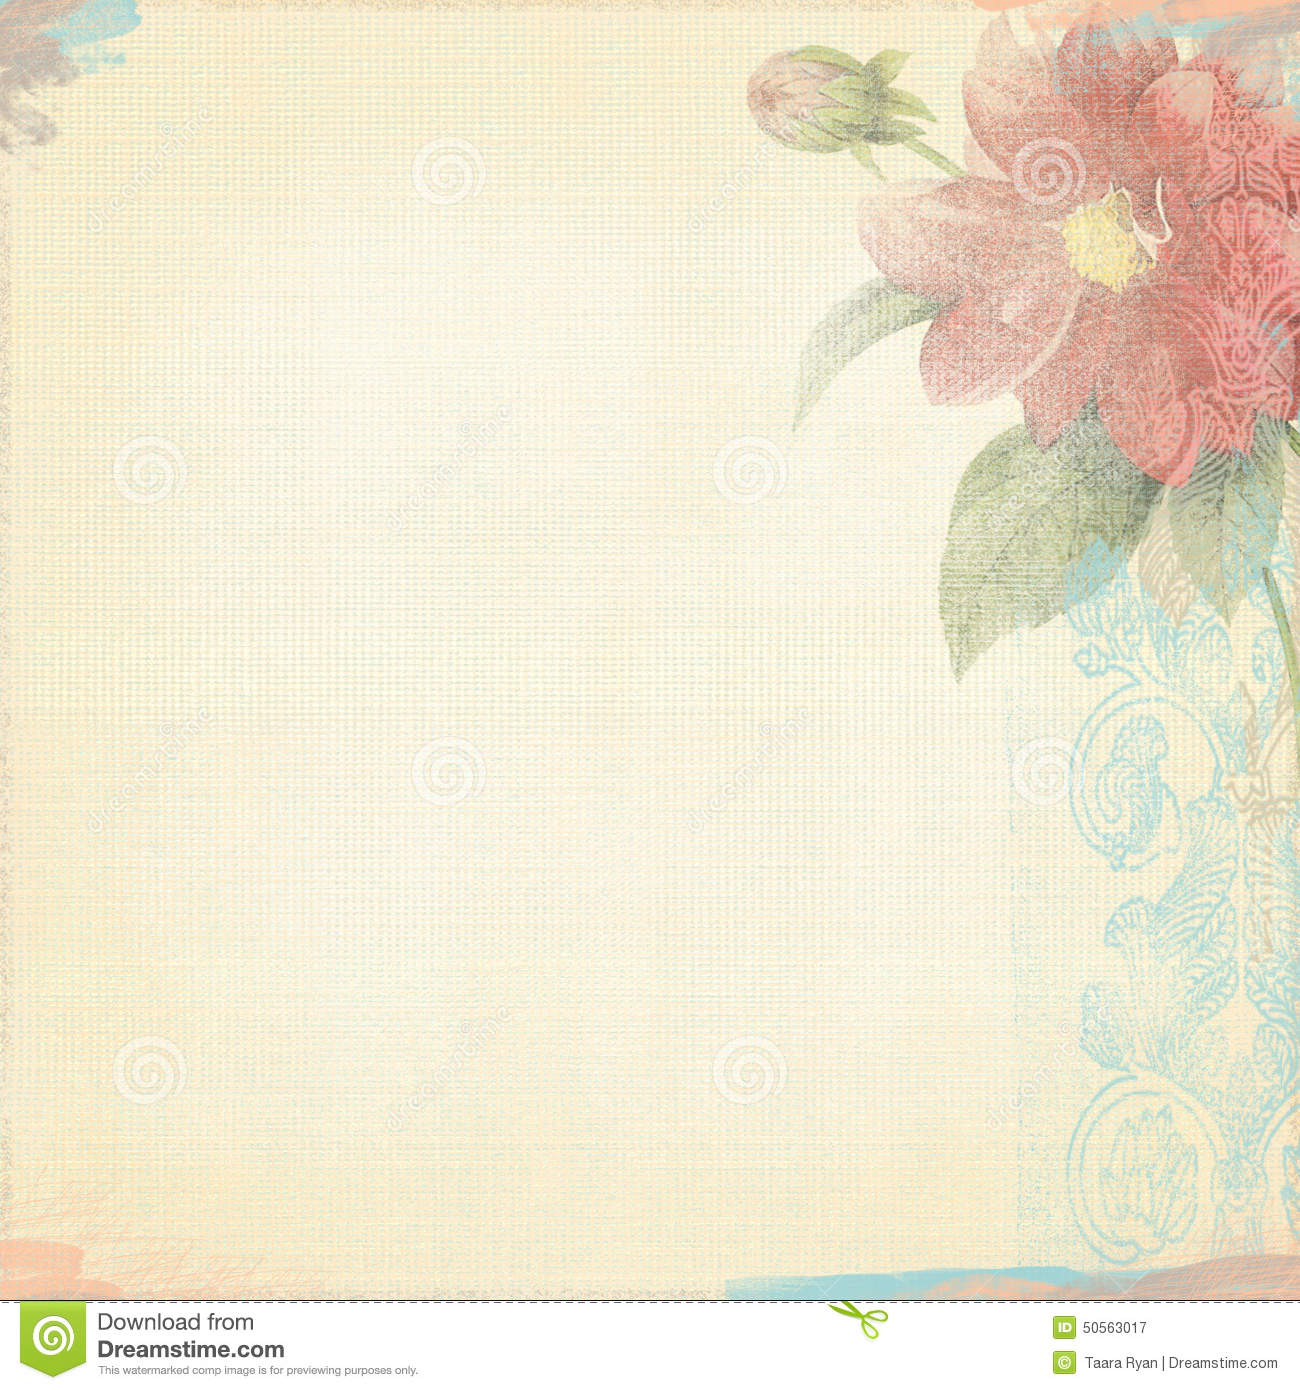 Stock Photo Colorful Flowers Abstract Leaves Butterfly Image33648790 likewise Stock Illustration Certificate Achievement Frame Design Template Blue Image60114829 likewise Royalty Free Stock Photo Mermaid Background Seamless Wallpaper Pattern Art Deco Style Mermaids Image33747195 together with Stock Image Font Rope Image22135211 additionally Architectural Person Silhouette. on 3d art deco architecture